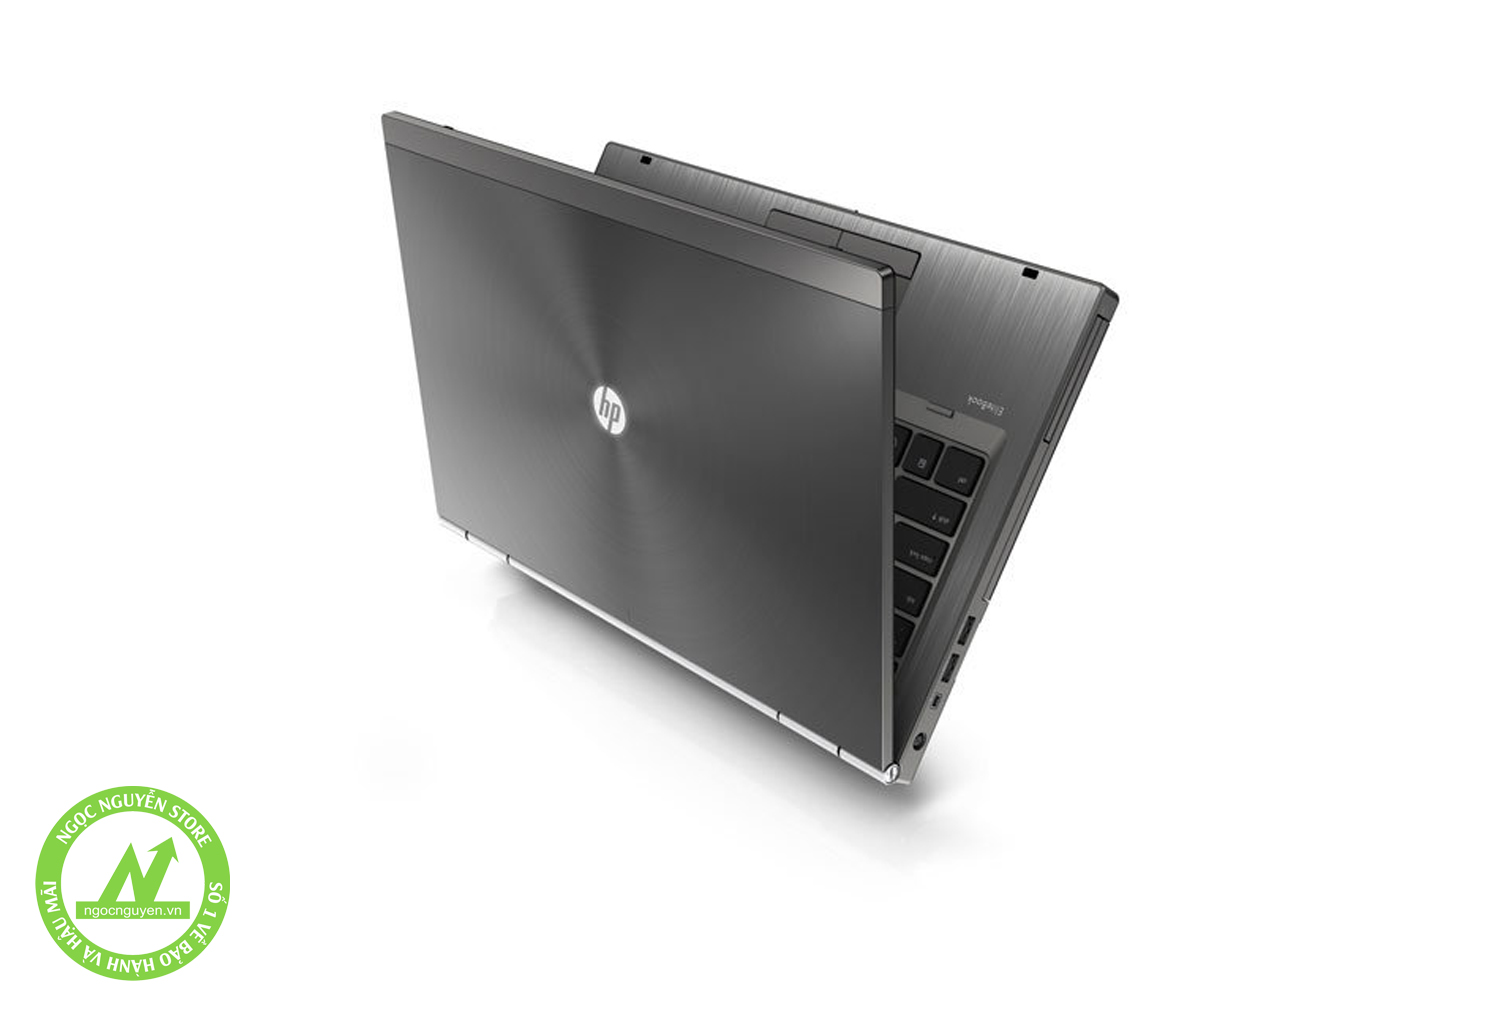 HP ELITEBOOK 8460P I7 2620M